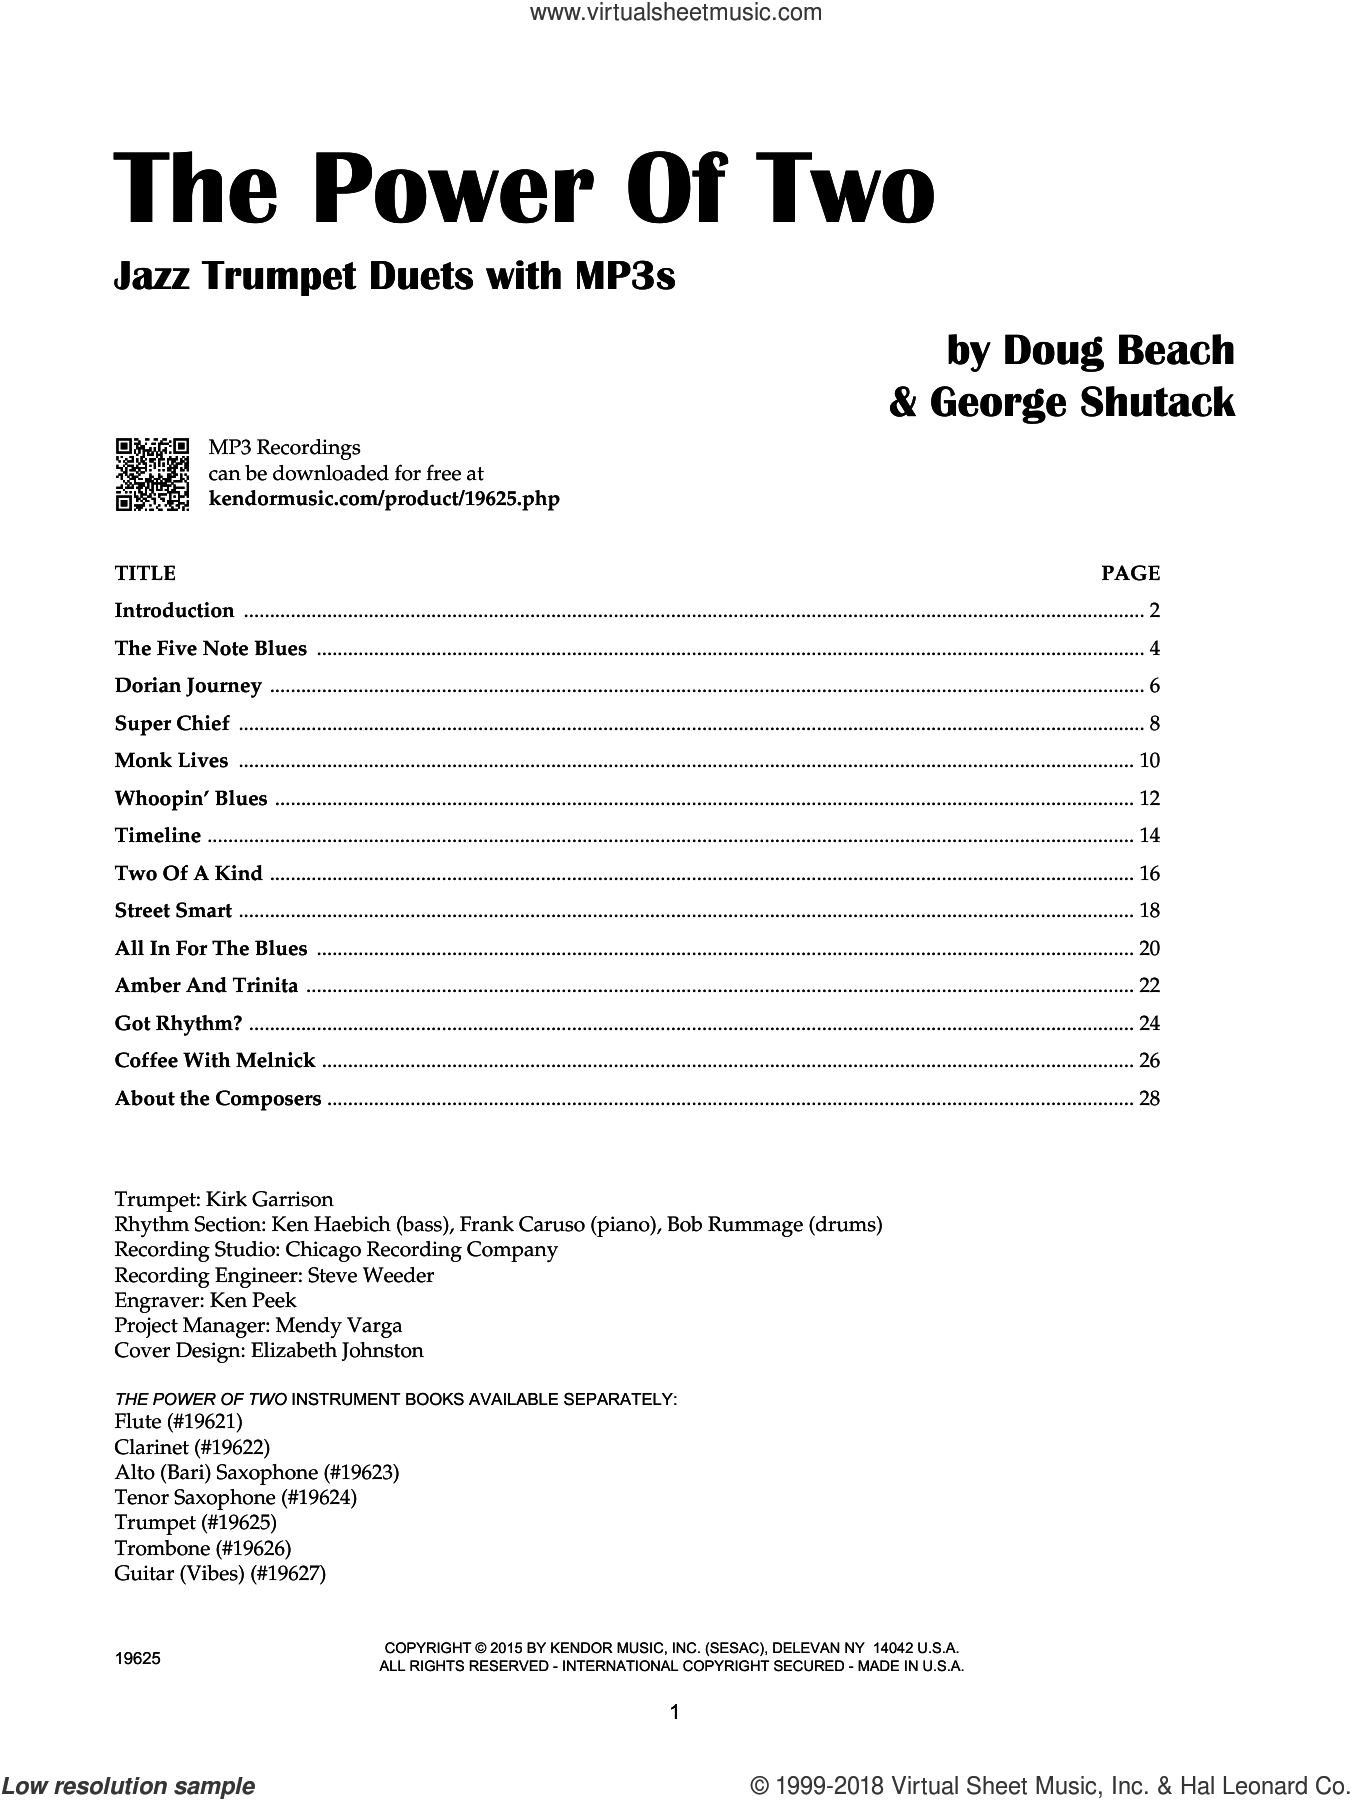 The Power Of Two - Trumpet sheet music for two trumpets by Doug Beach and George Shutack, intermediate duet